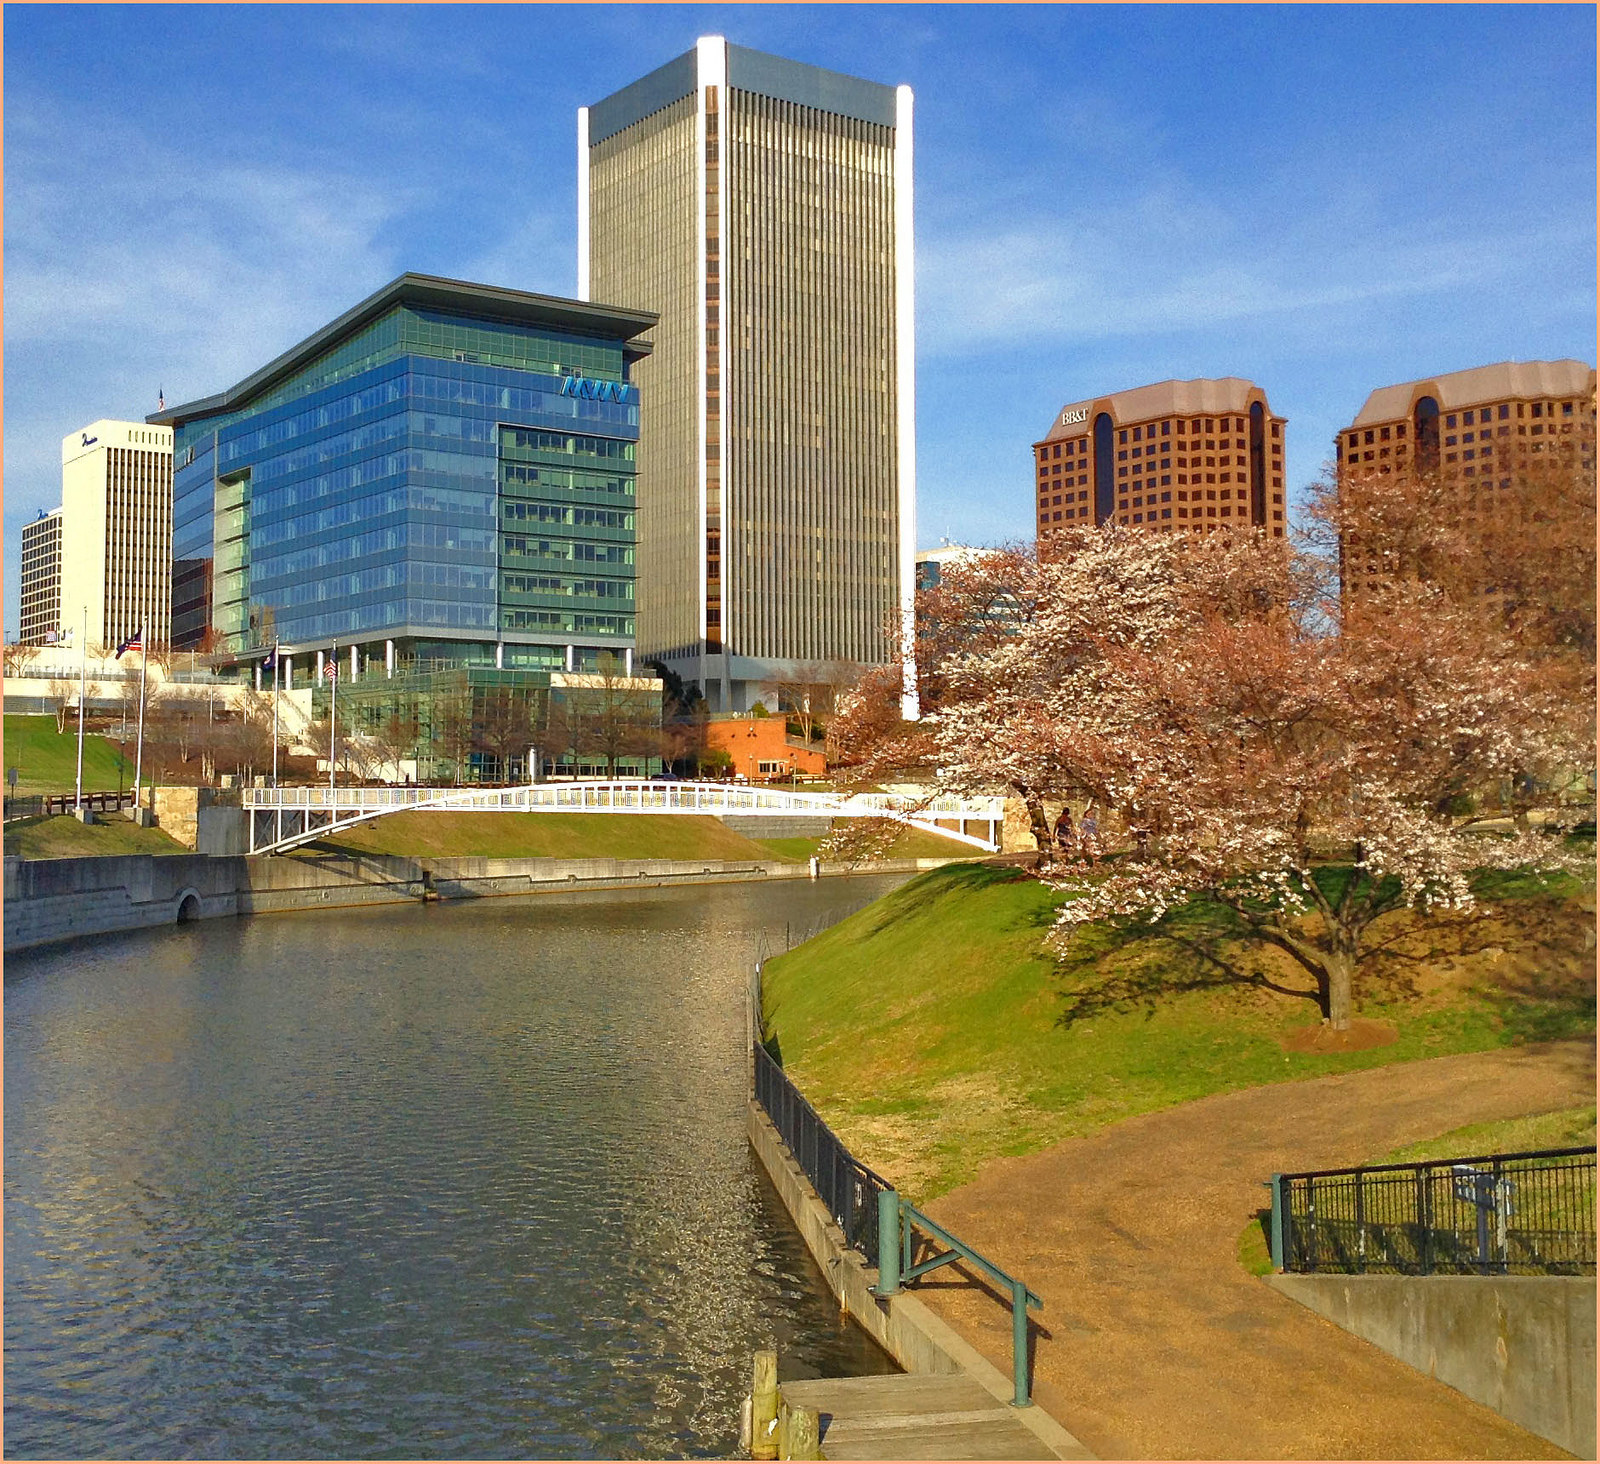 View of Downtown Richmond (VA) from Brown's Island April 2015 | ©Ron Cogswell/Flickr